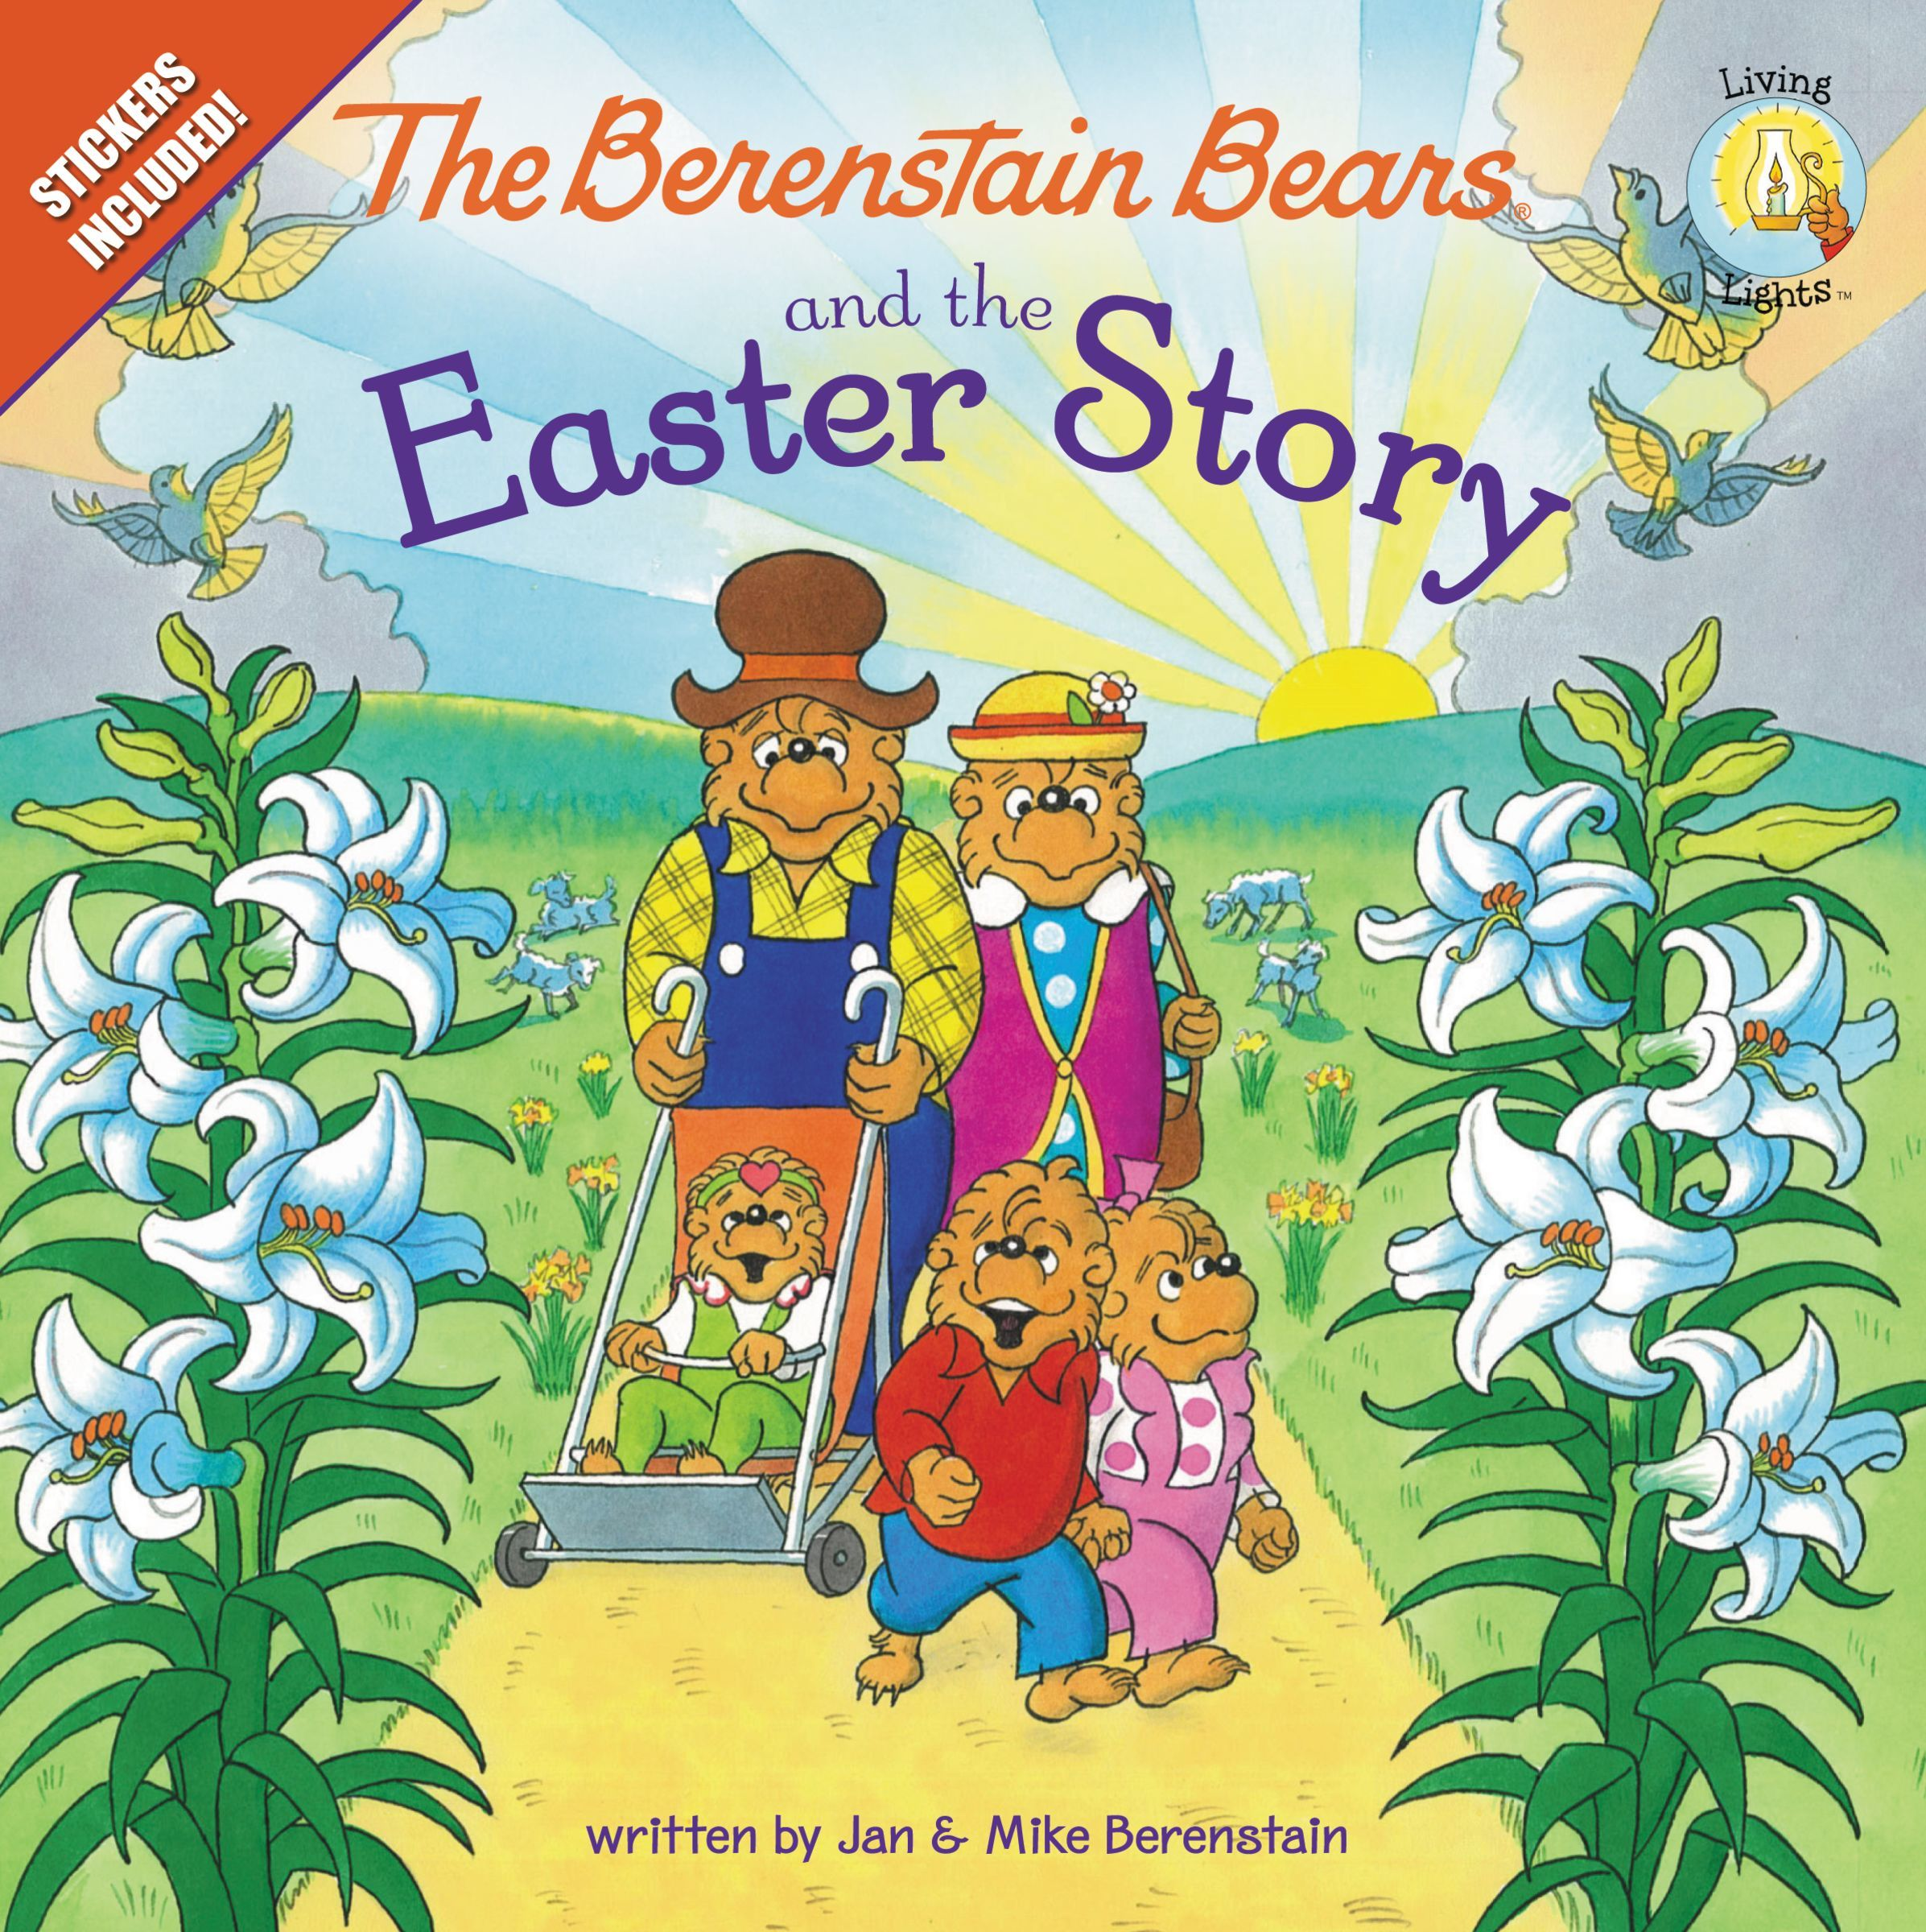 The Berenstain Bears and the Easter Story